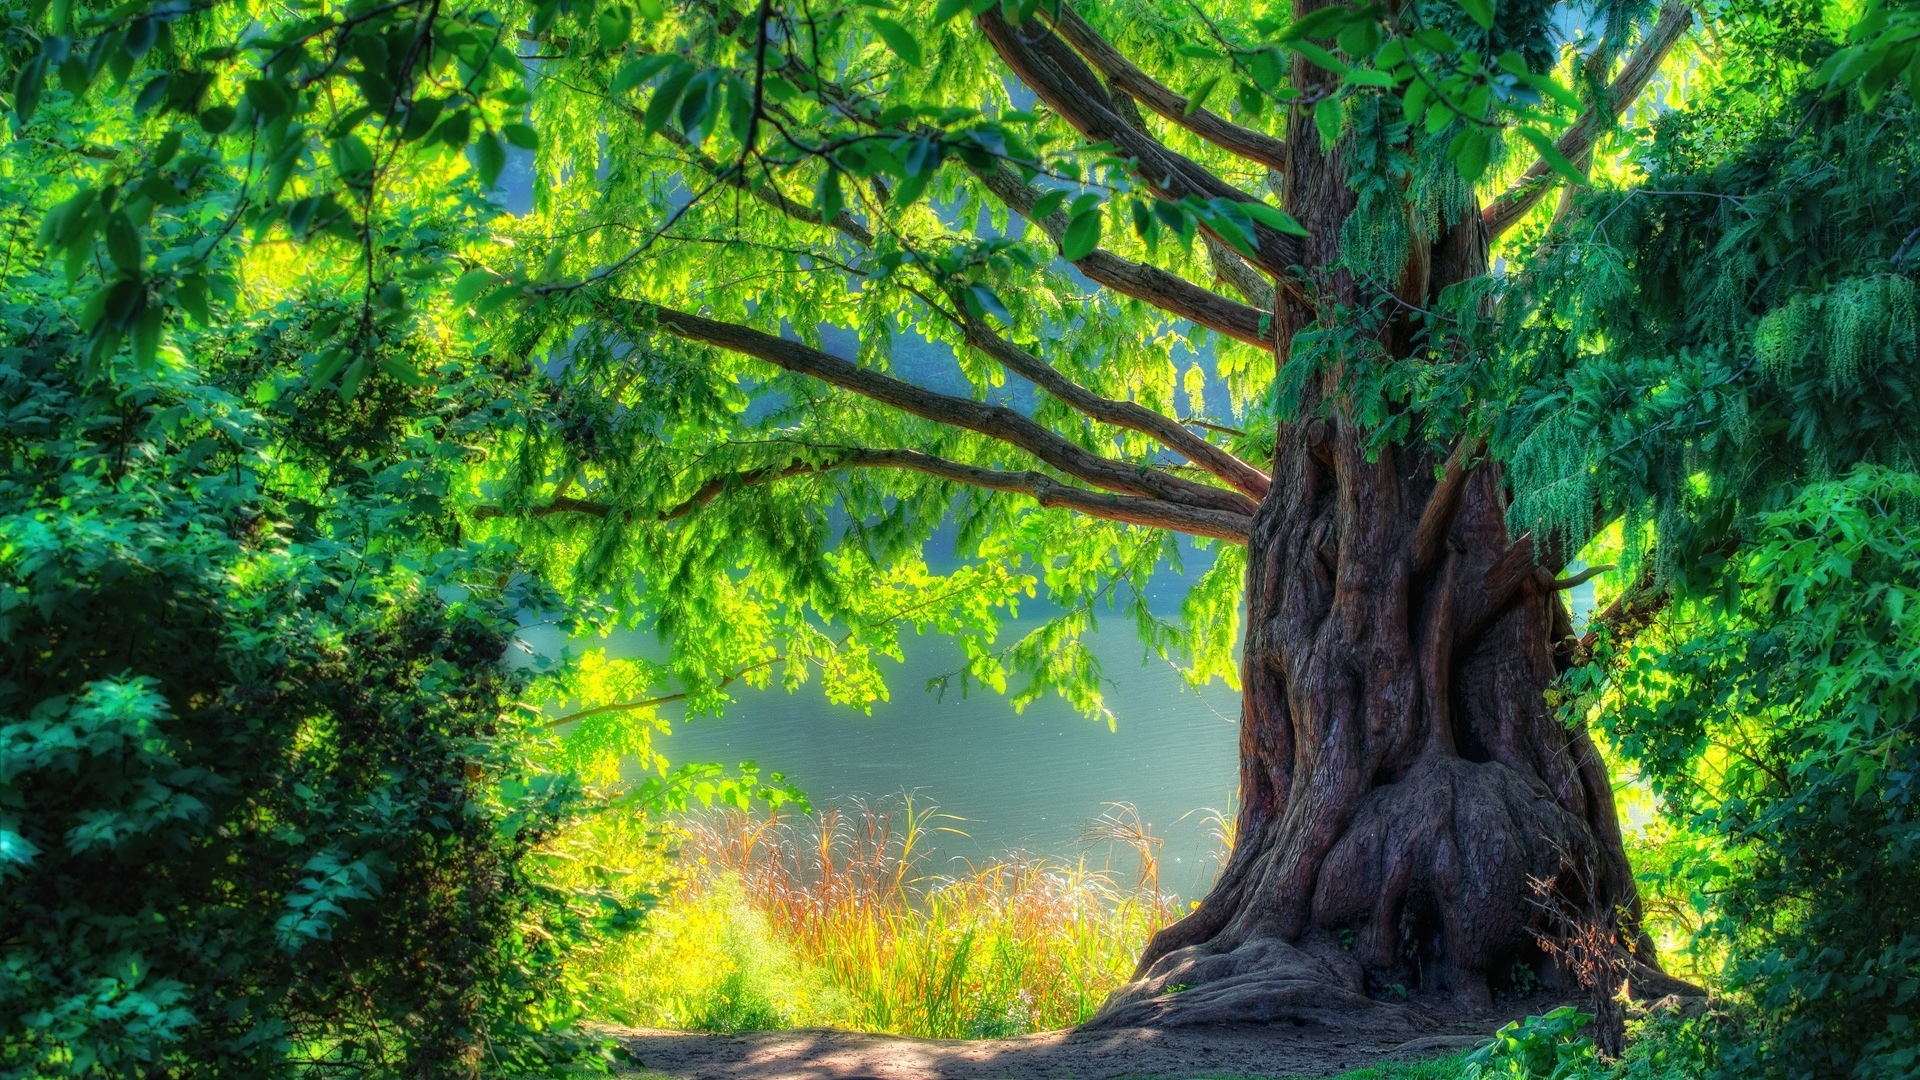 green nature background hd - photo #23